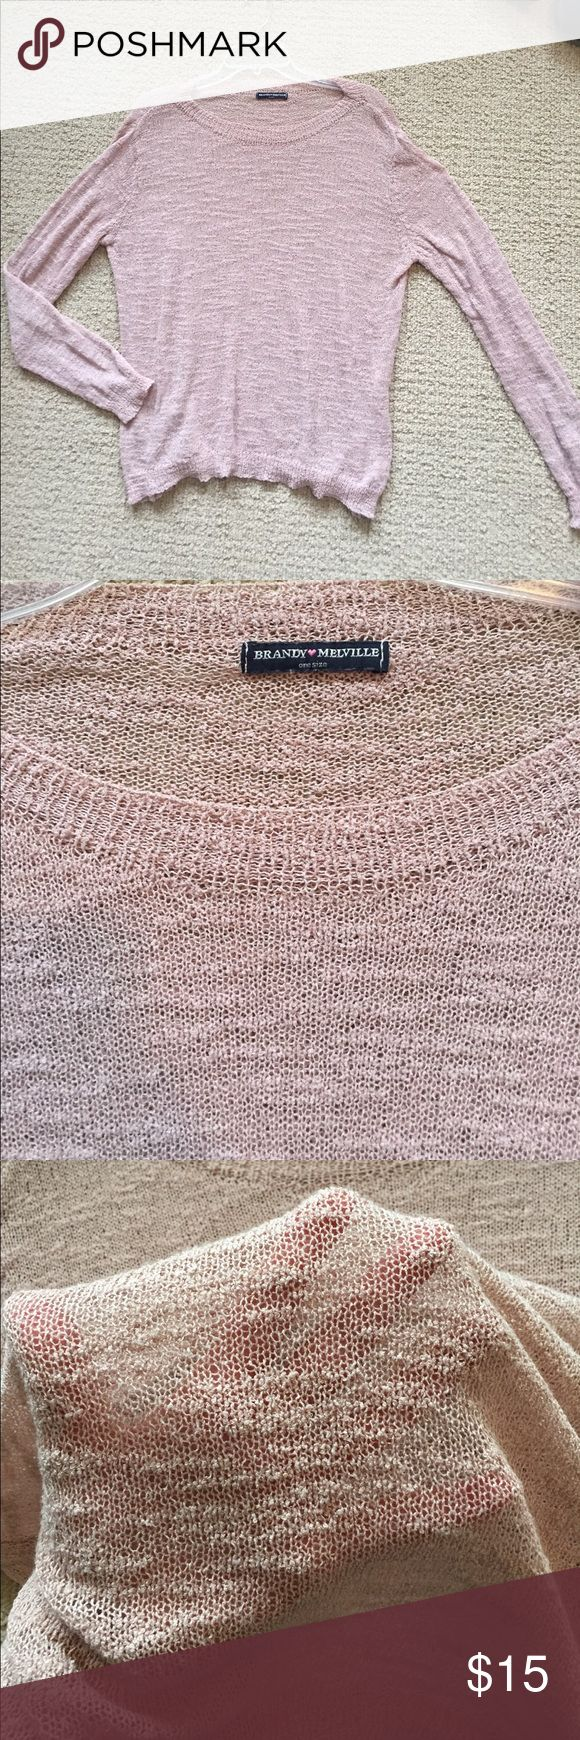 Brandy Melville Pink Slouchy Sweater Top This top is sheer and meant to be layered Brandy Melville Tops Tees - Long Sleeve